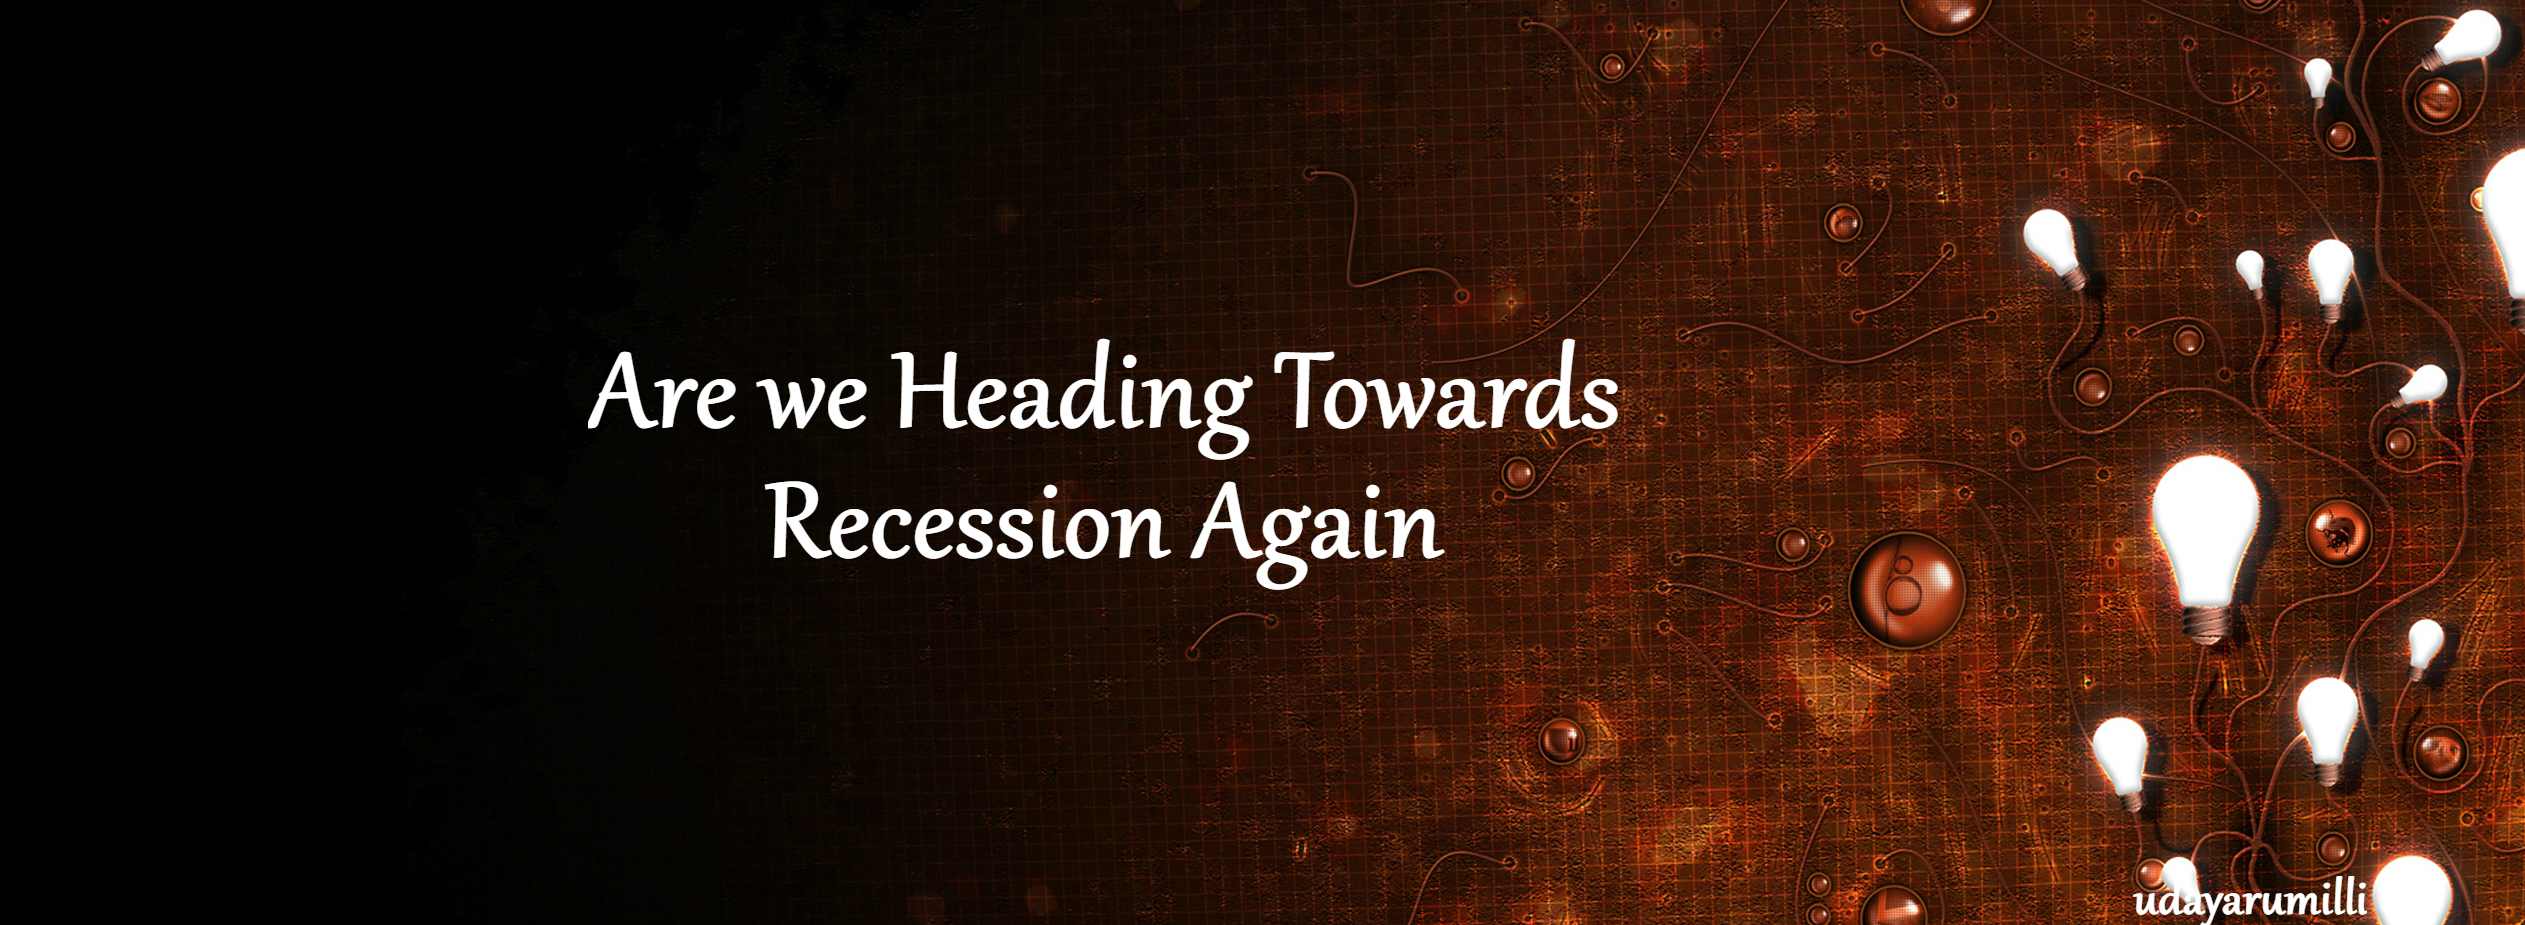 Are we heading towards recession again